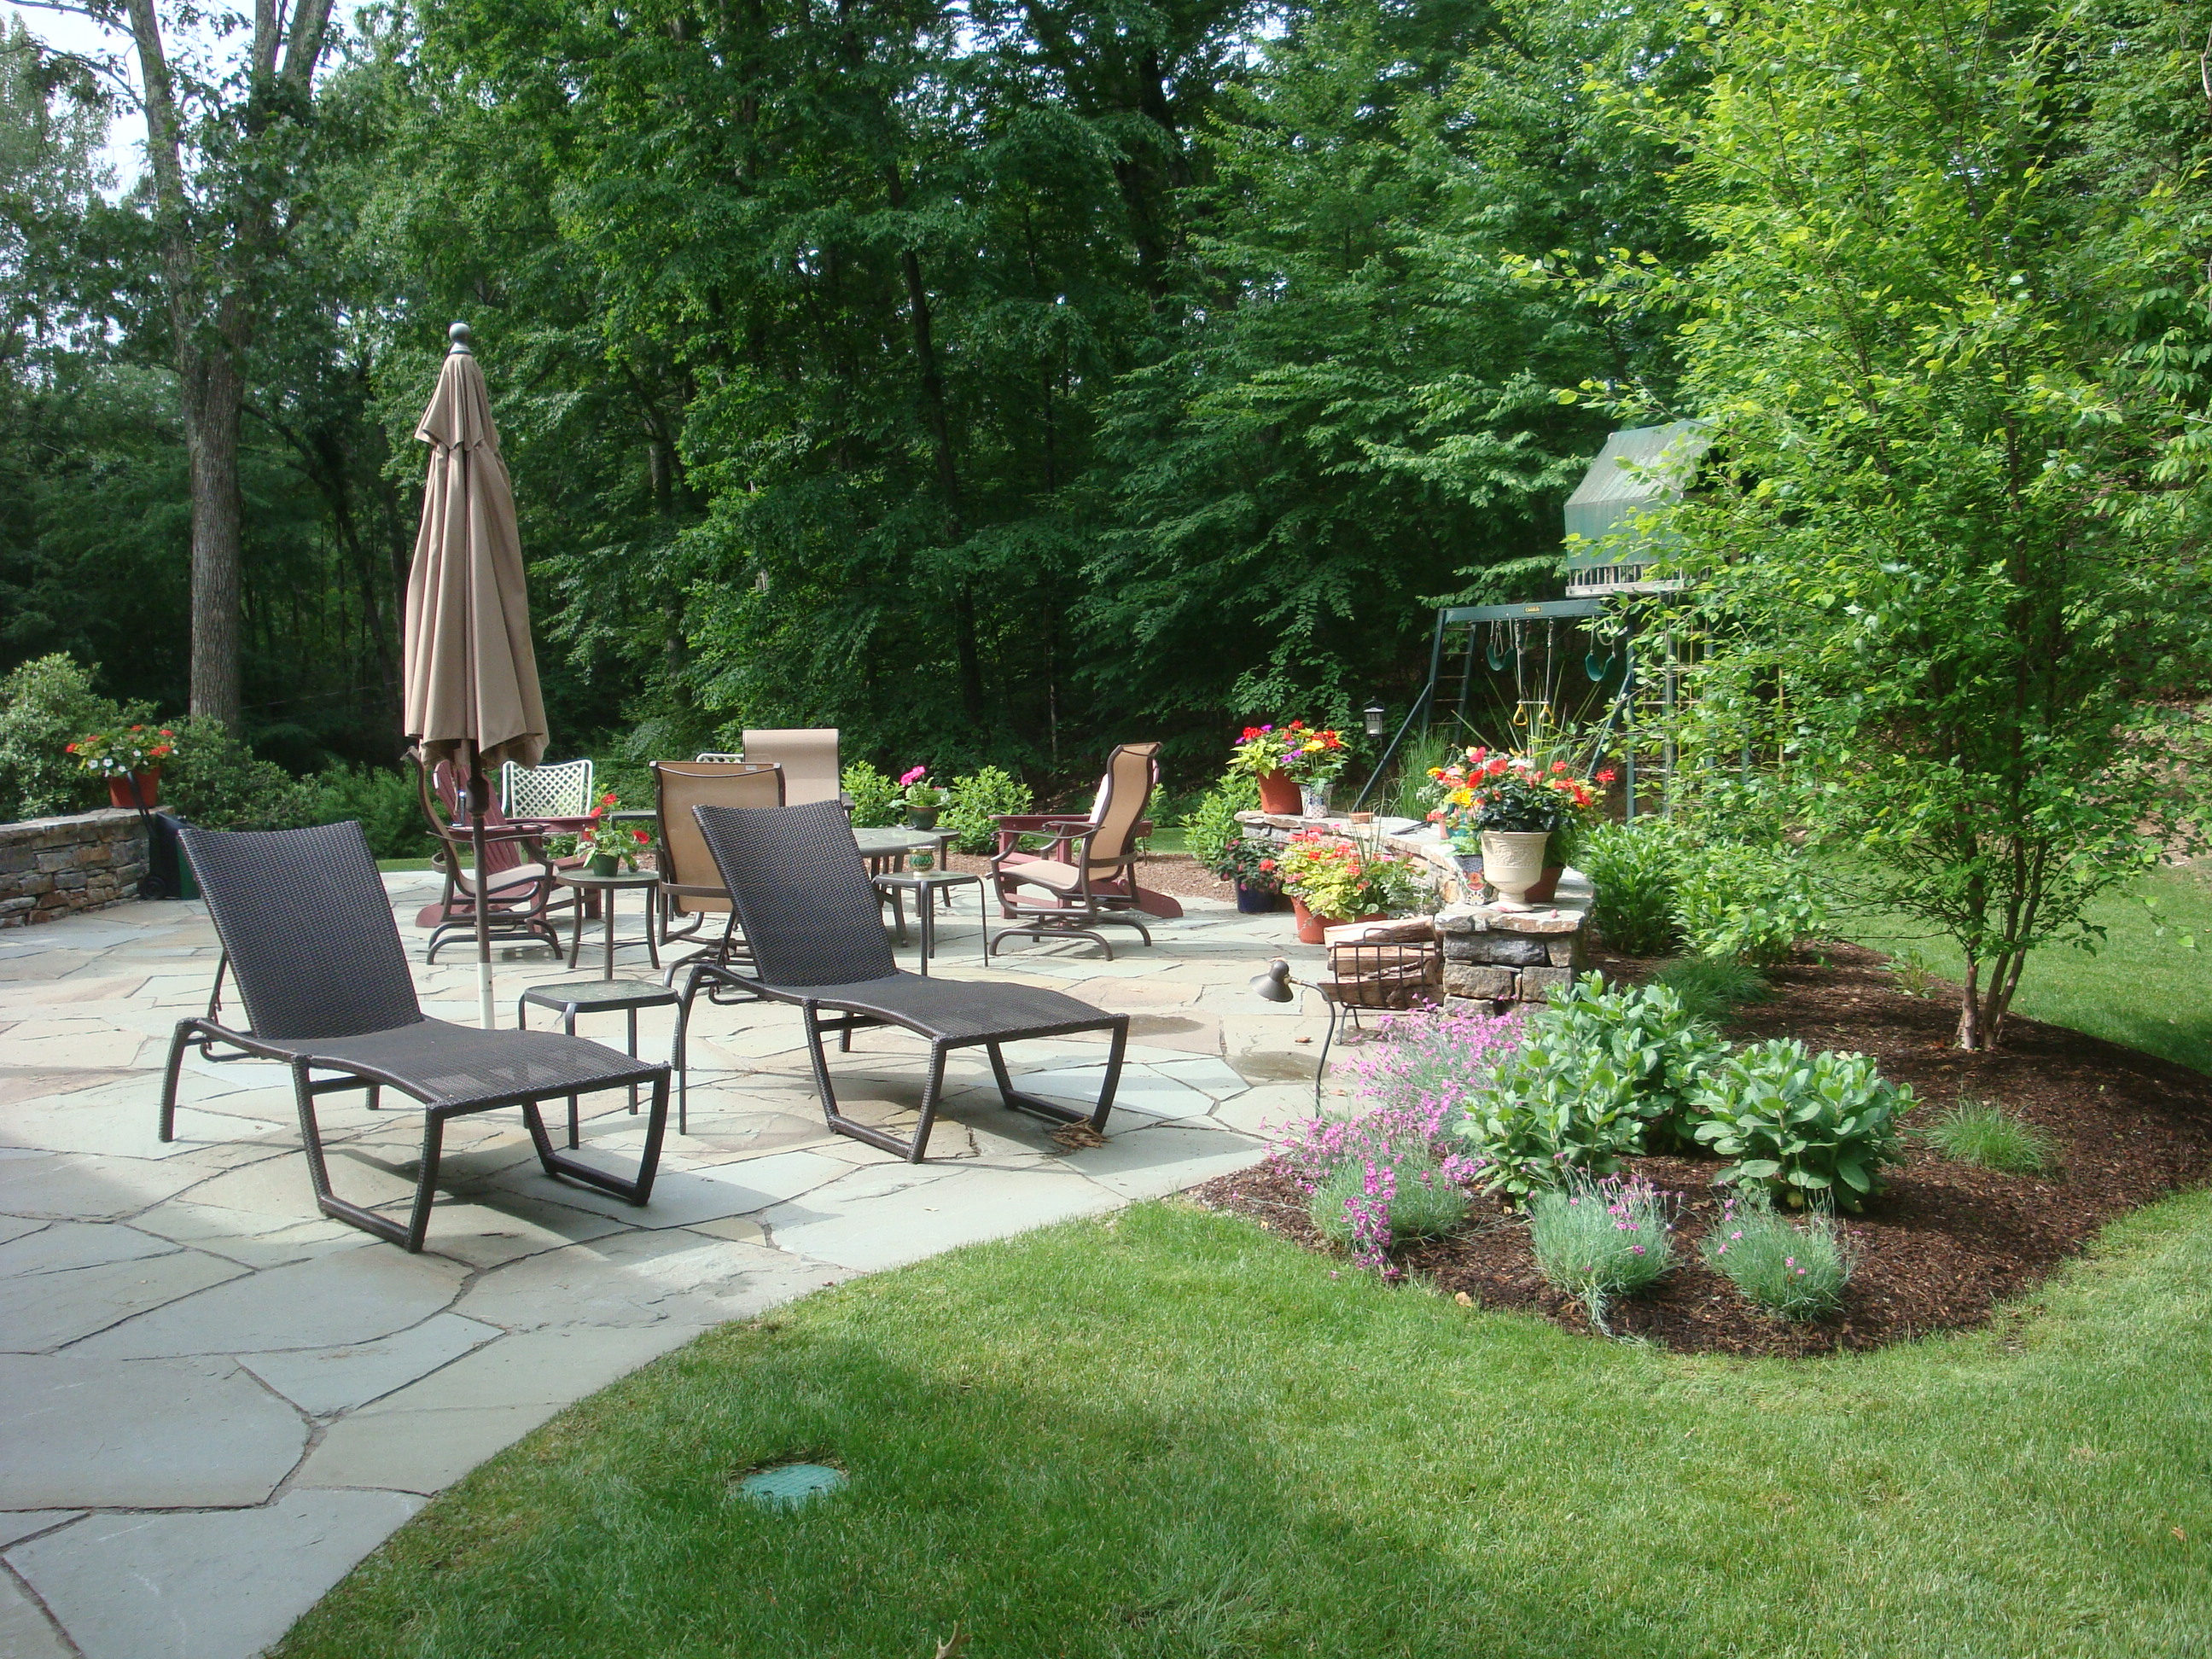 Patios garden designers roundtable for Garden and patio designs